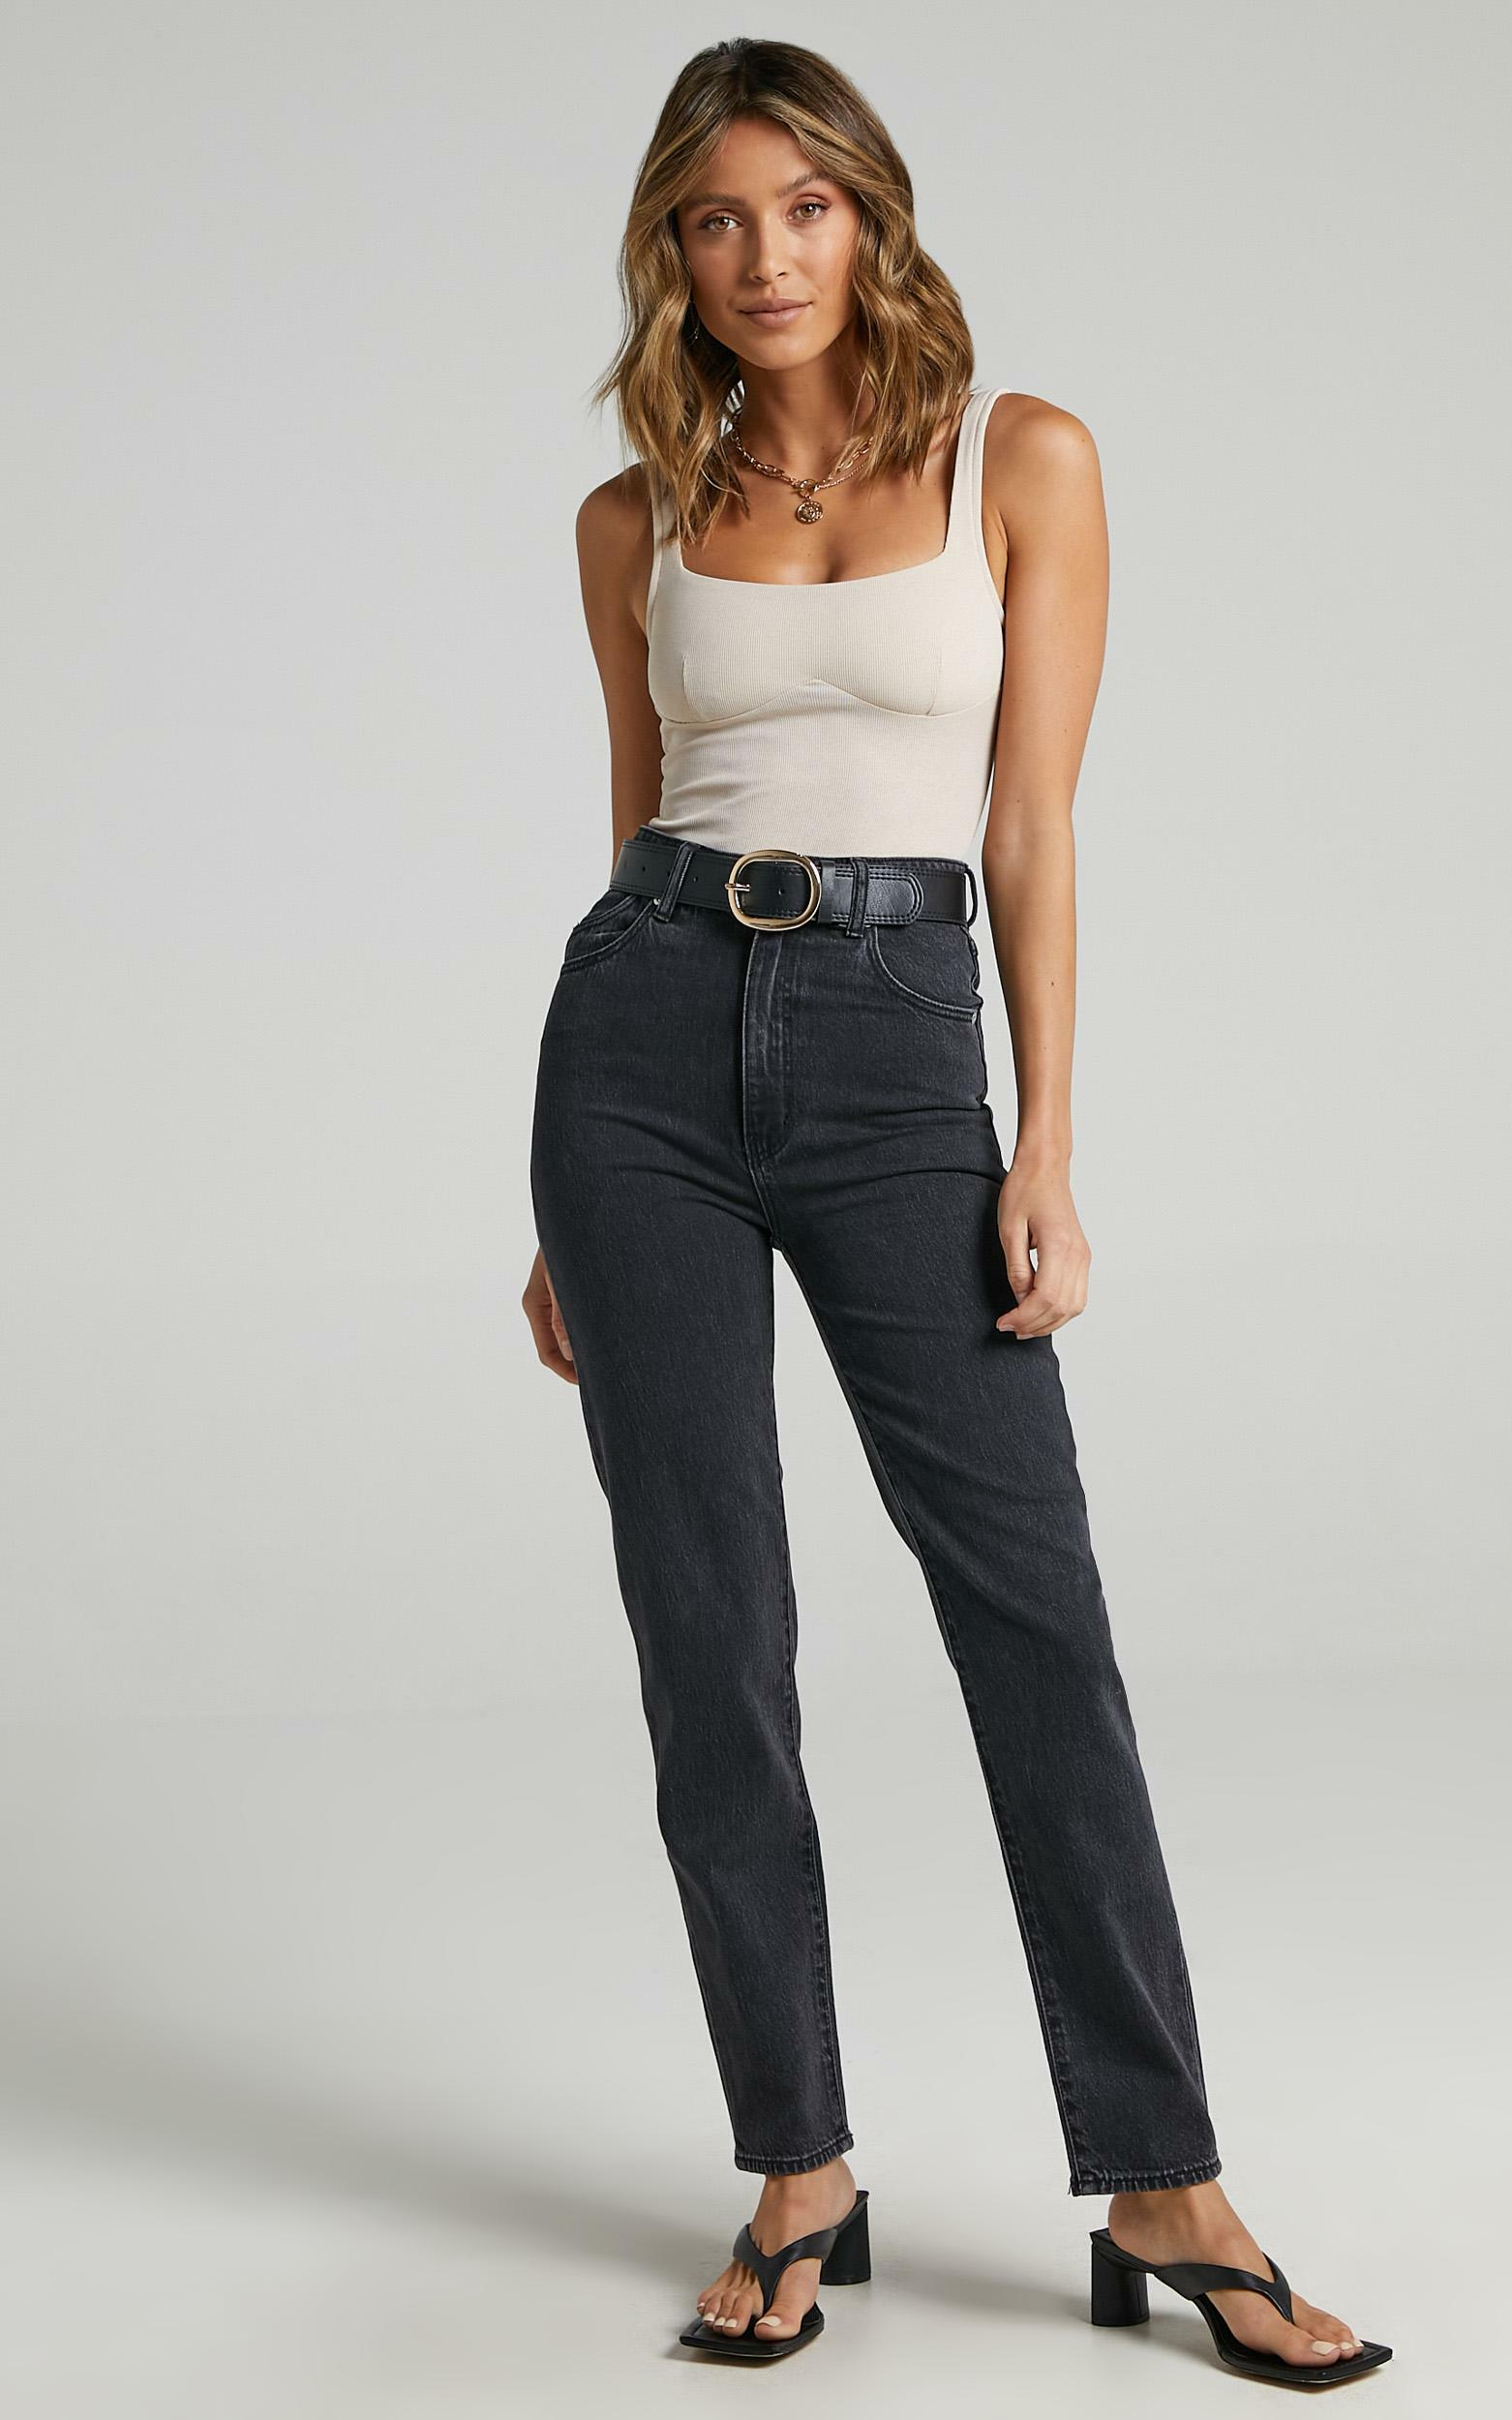 Rollas - Dusters Jean in Comfort Shadow - 06, BLK1, hi-res image number null